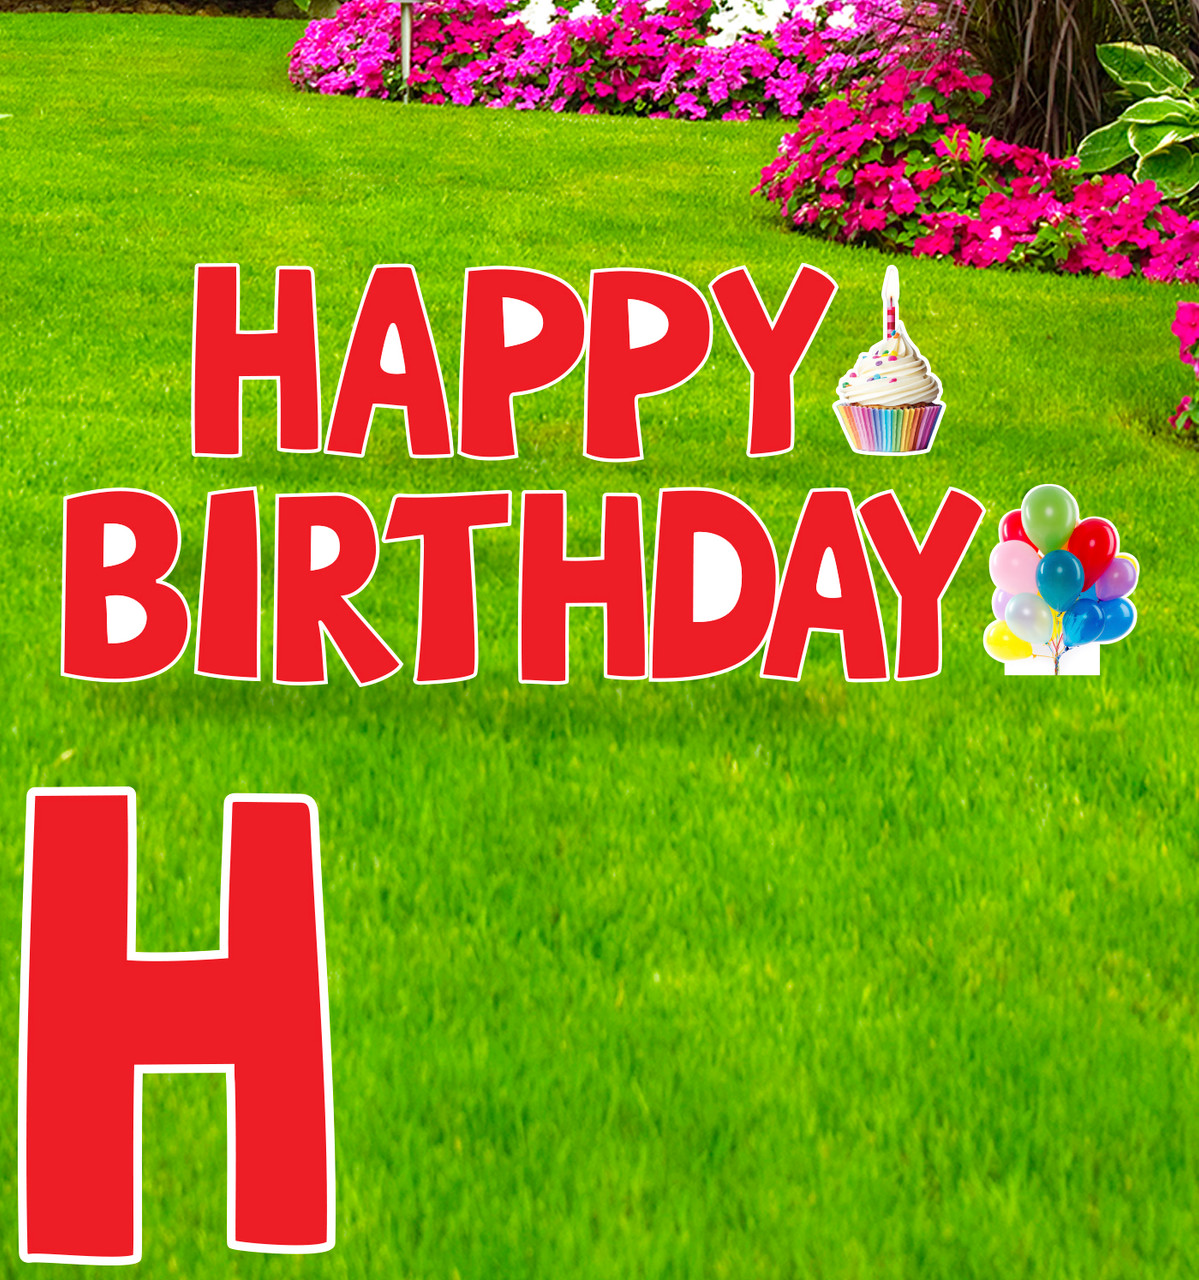 Coroplast red Paper Happy Birthday yard signs with background.